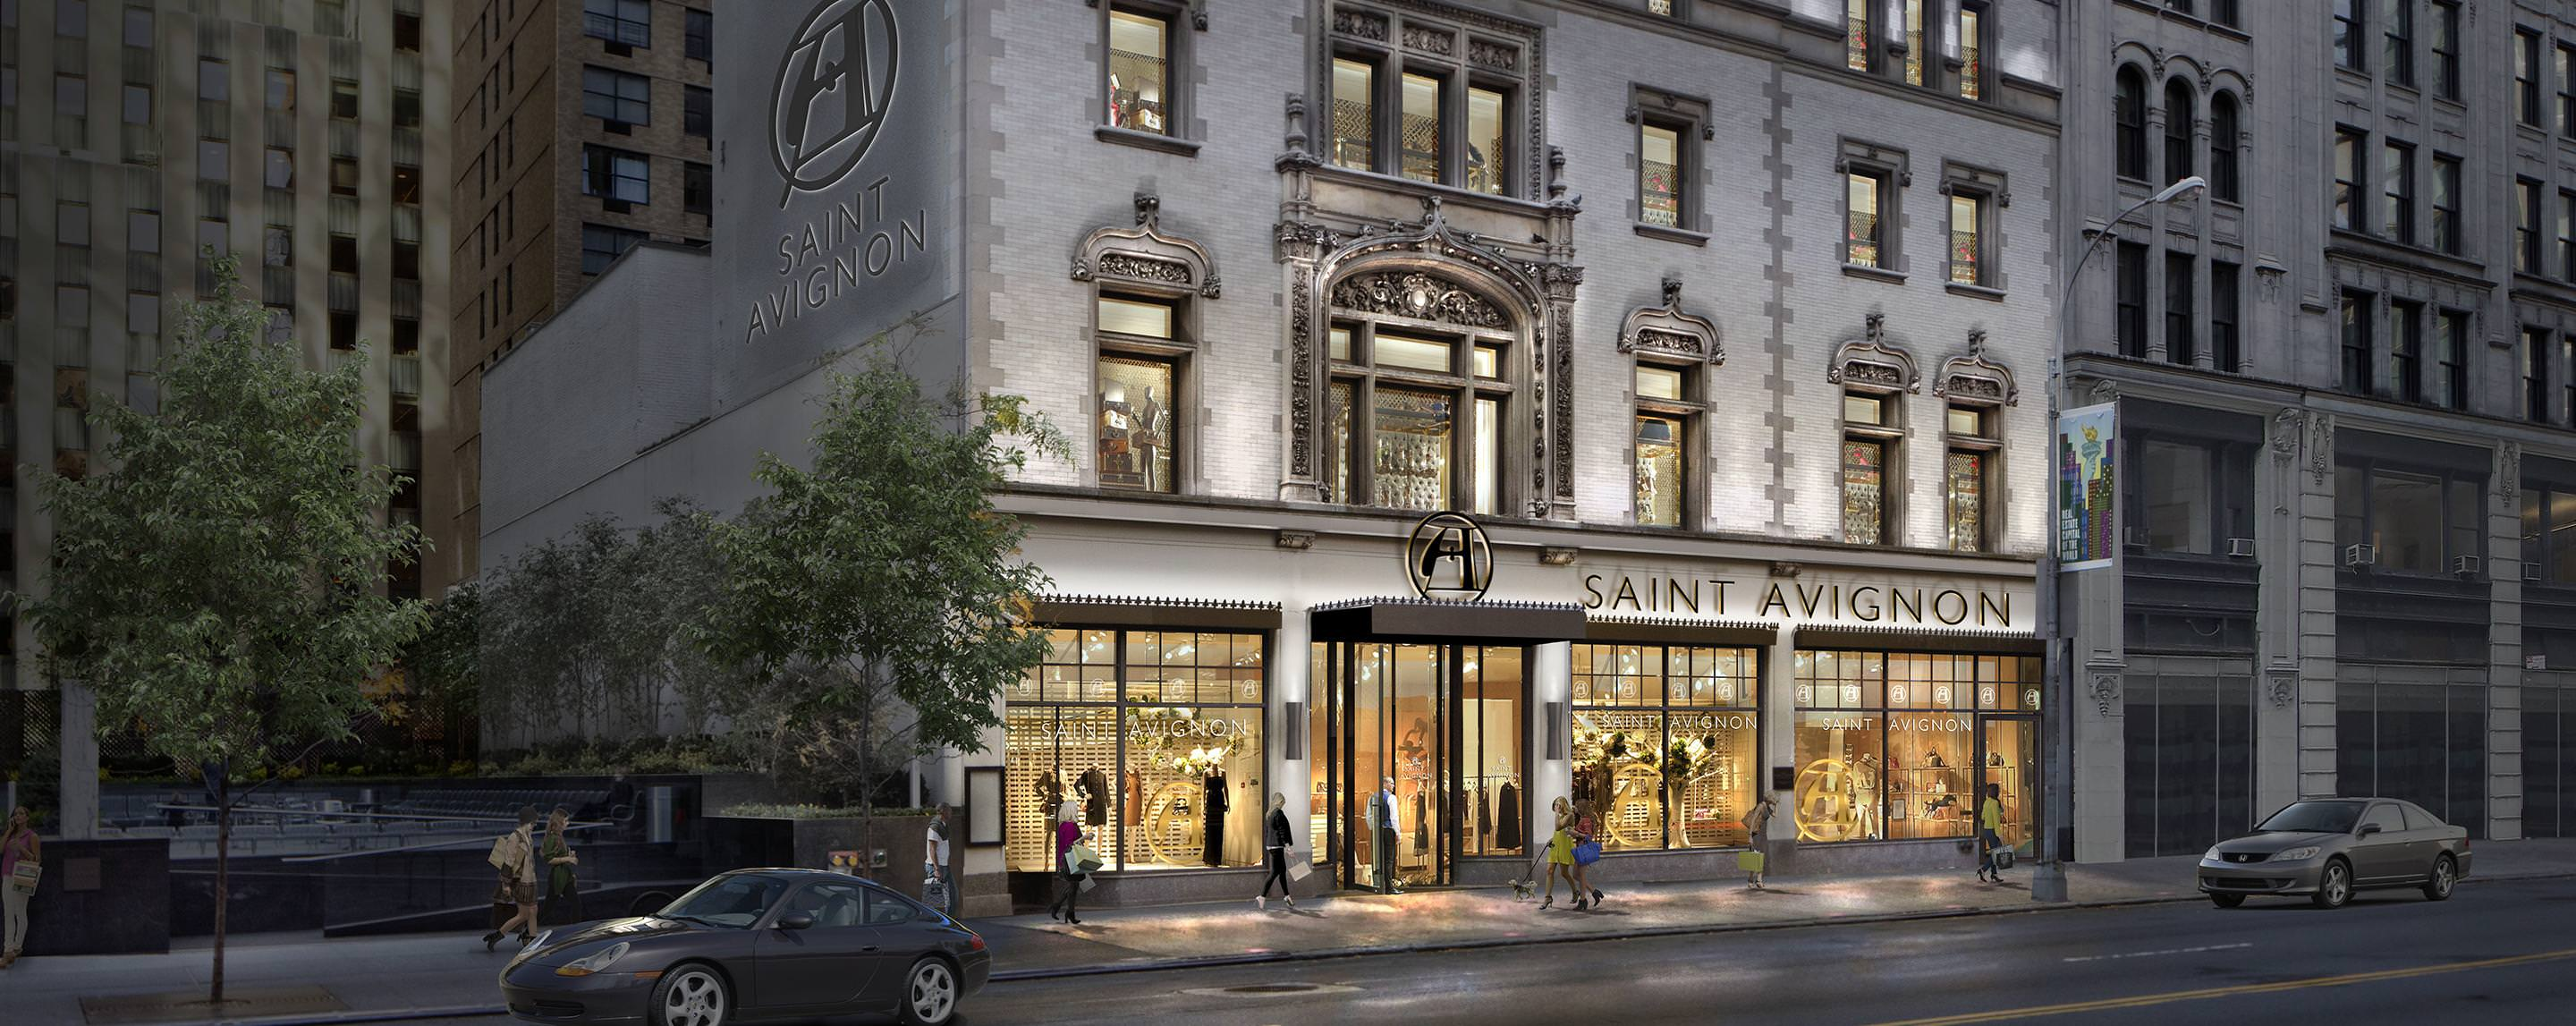 GGP's property on 218 W 57th Street lights up the street at dusk for shoppers passing by.